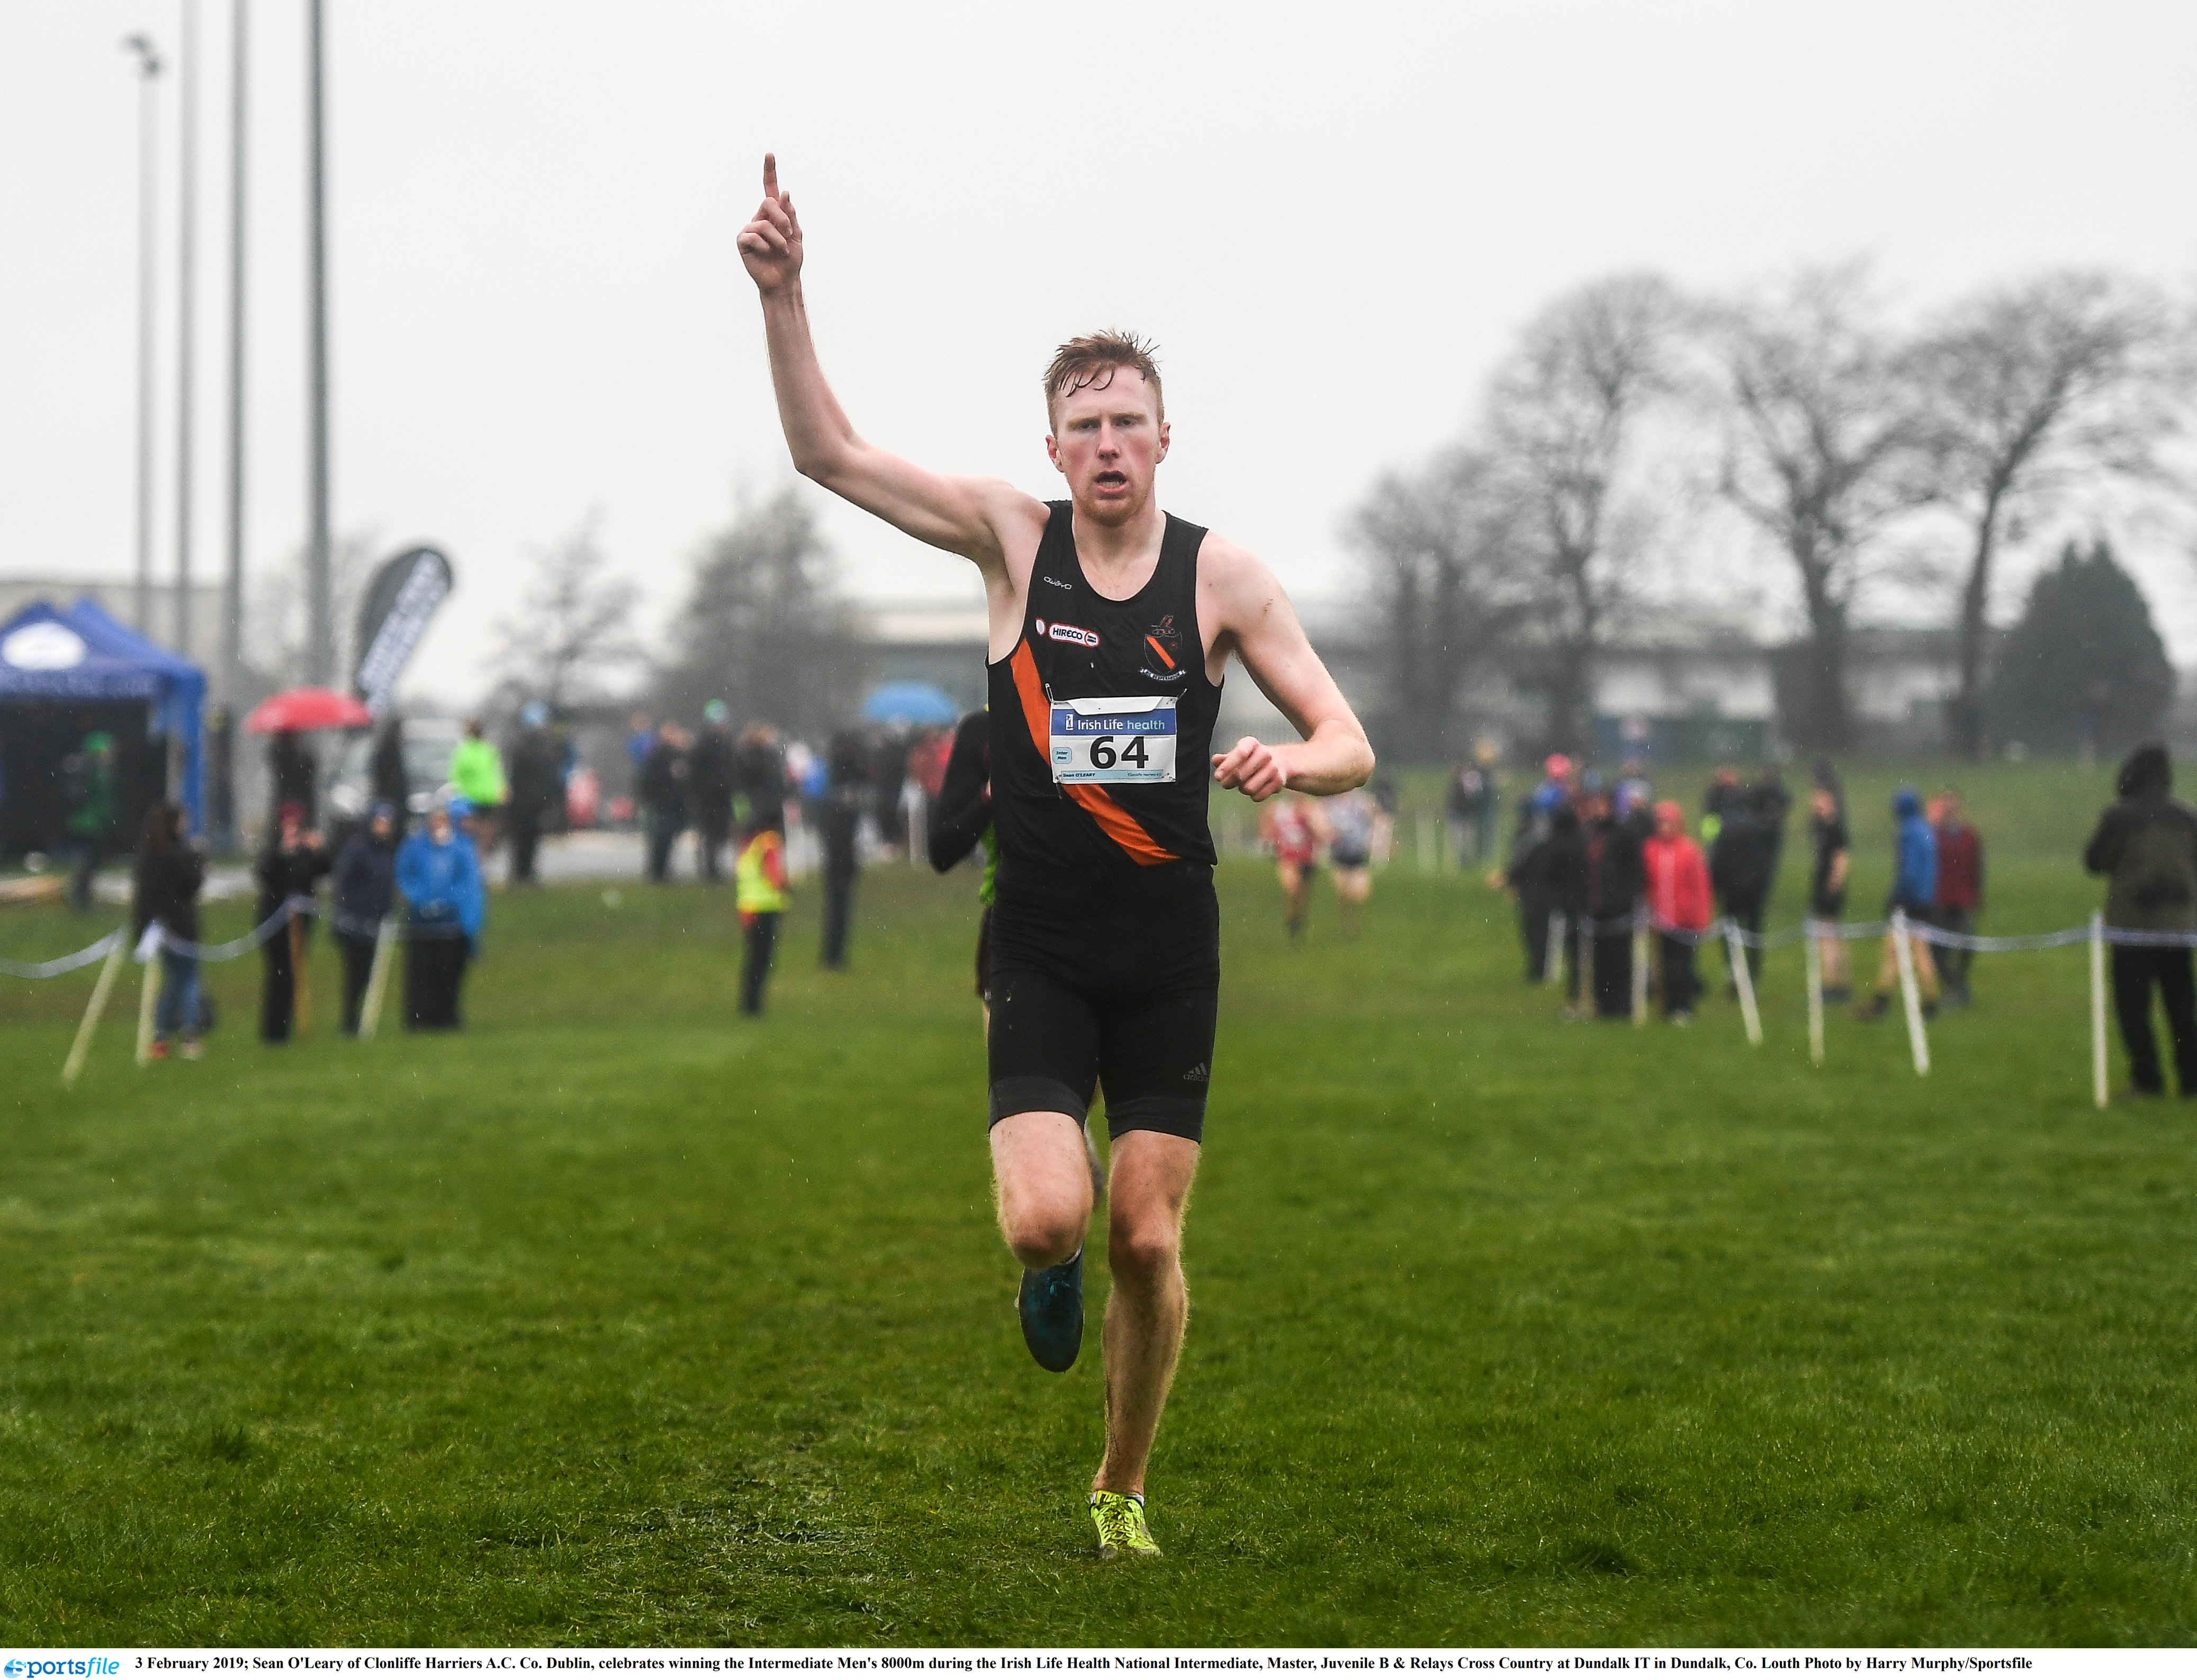 O'Leary and Nolan crown great day in Dundalk